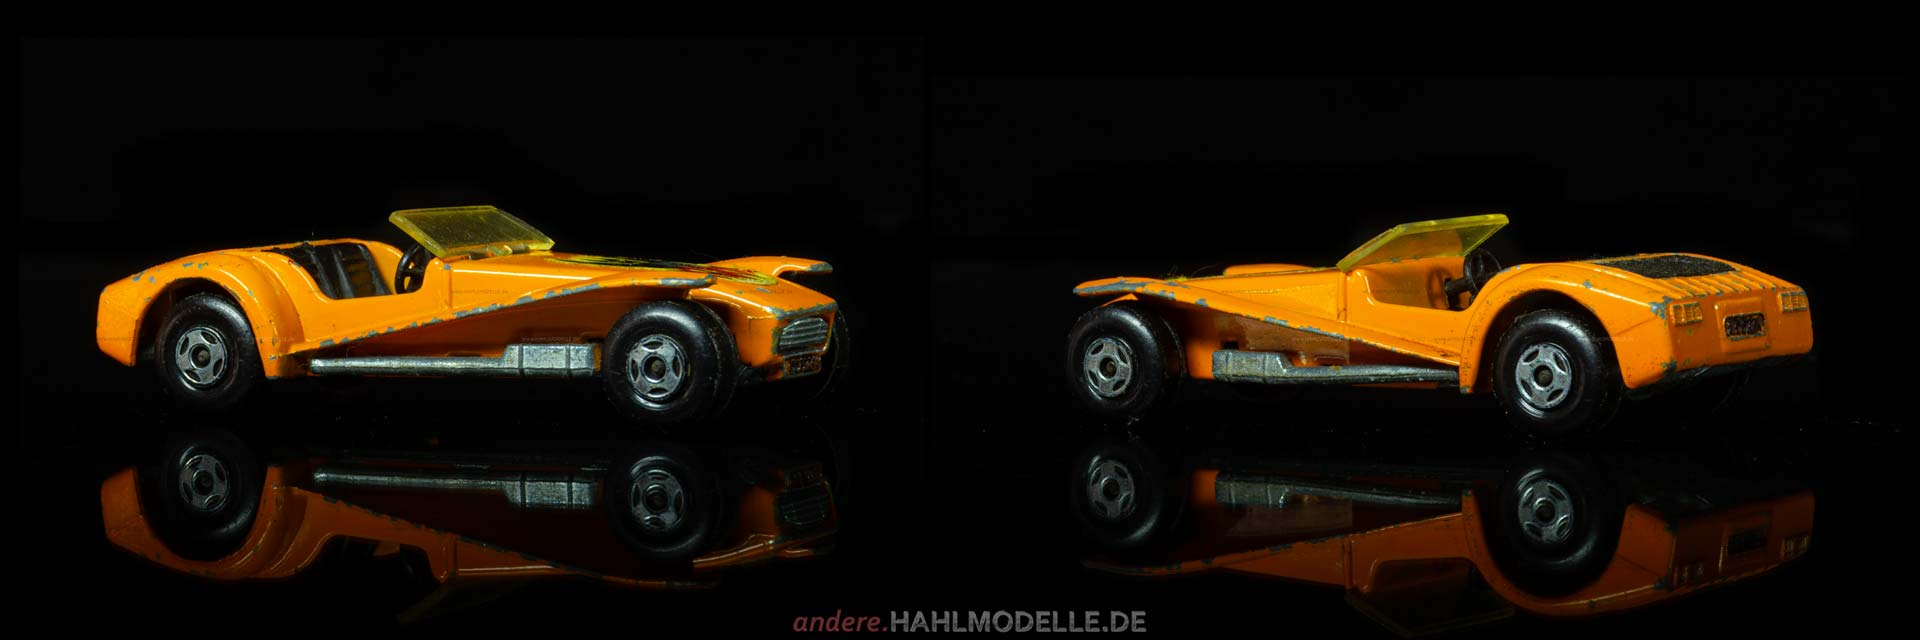 "Lotus Seven | Roadster | Lesney Products & Co. Ltd. | 1:51 | Matchbox Superfast ""Lotus Super Seven"" 